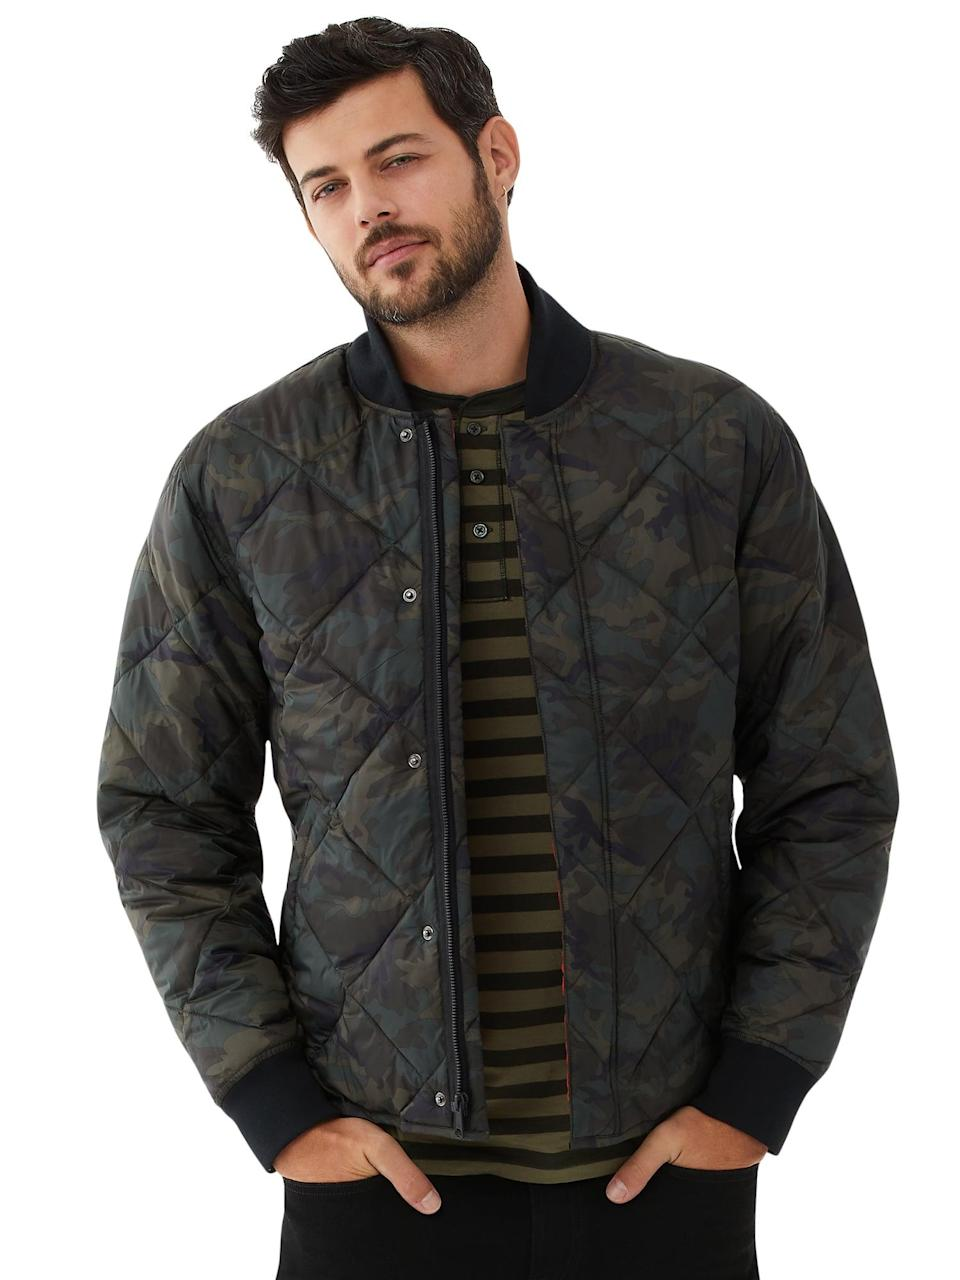 <p>The <span>Free Assembly Men's Camo-Print Bomber Jacket</span> ($45) will pair well with just about any wardrobe basics. That said, it's a safe - and stylish! - gifting option for guys.</p>